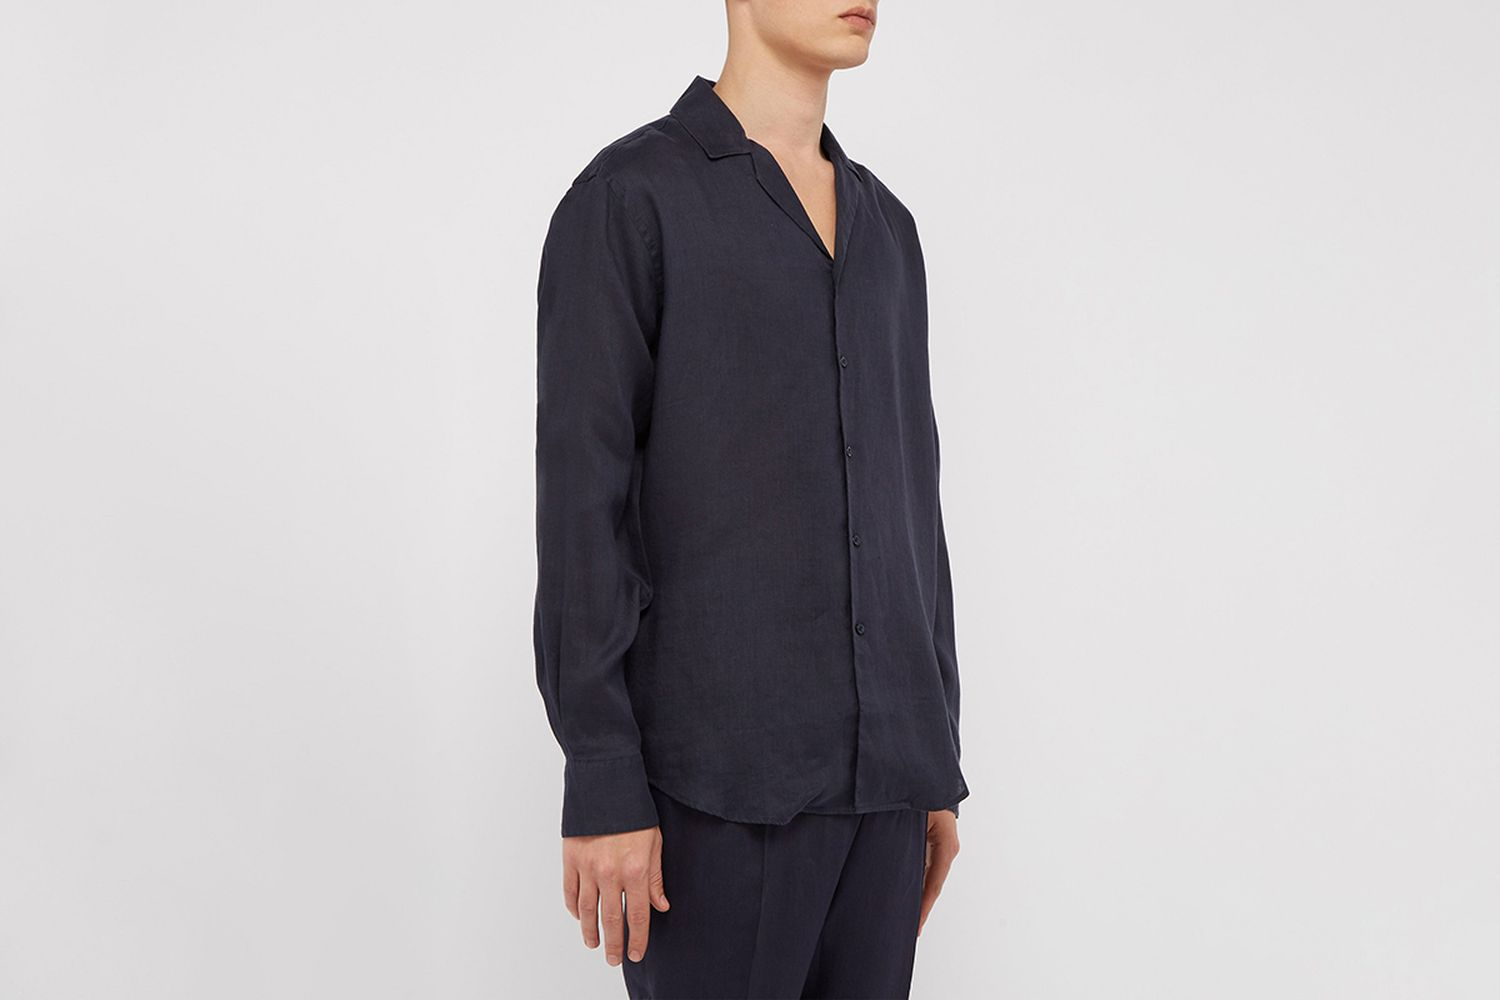 The Jacques Linen Shirt